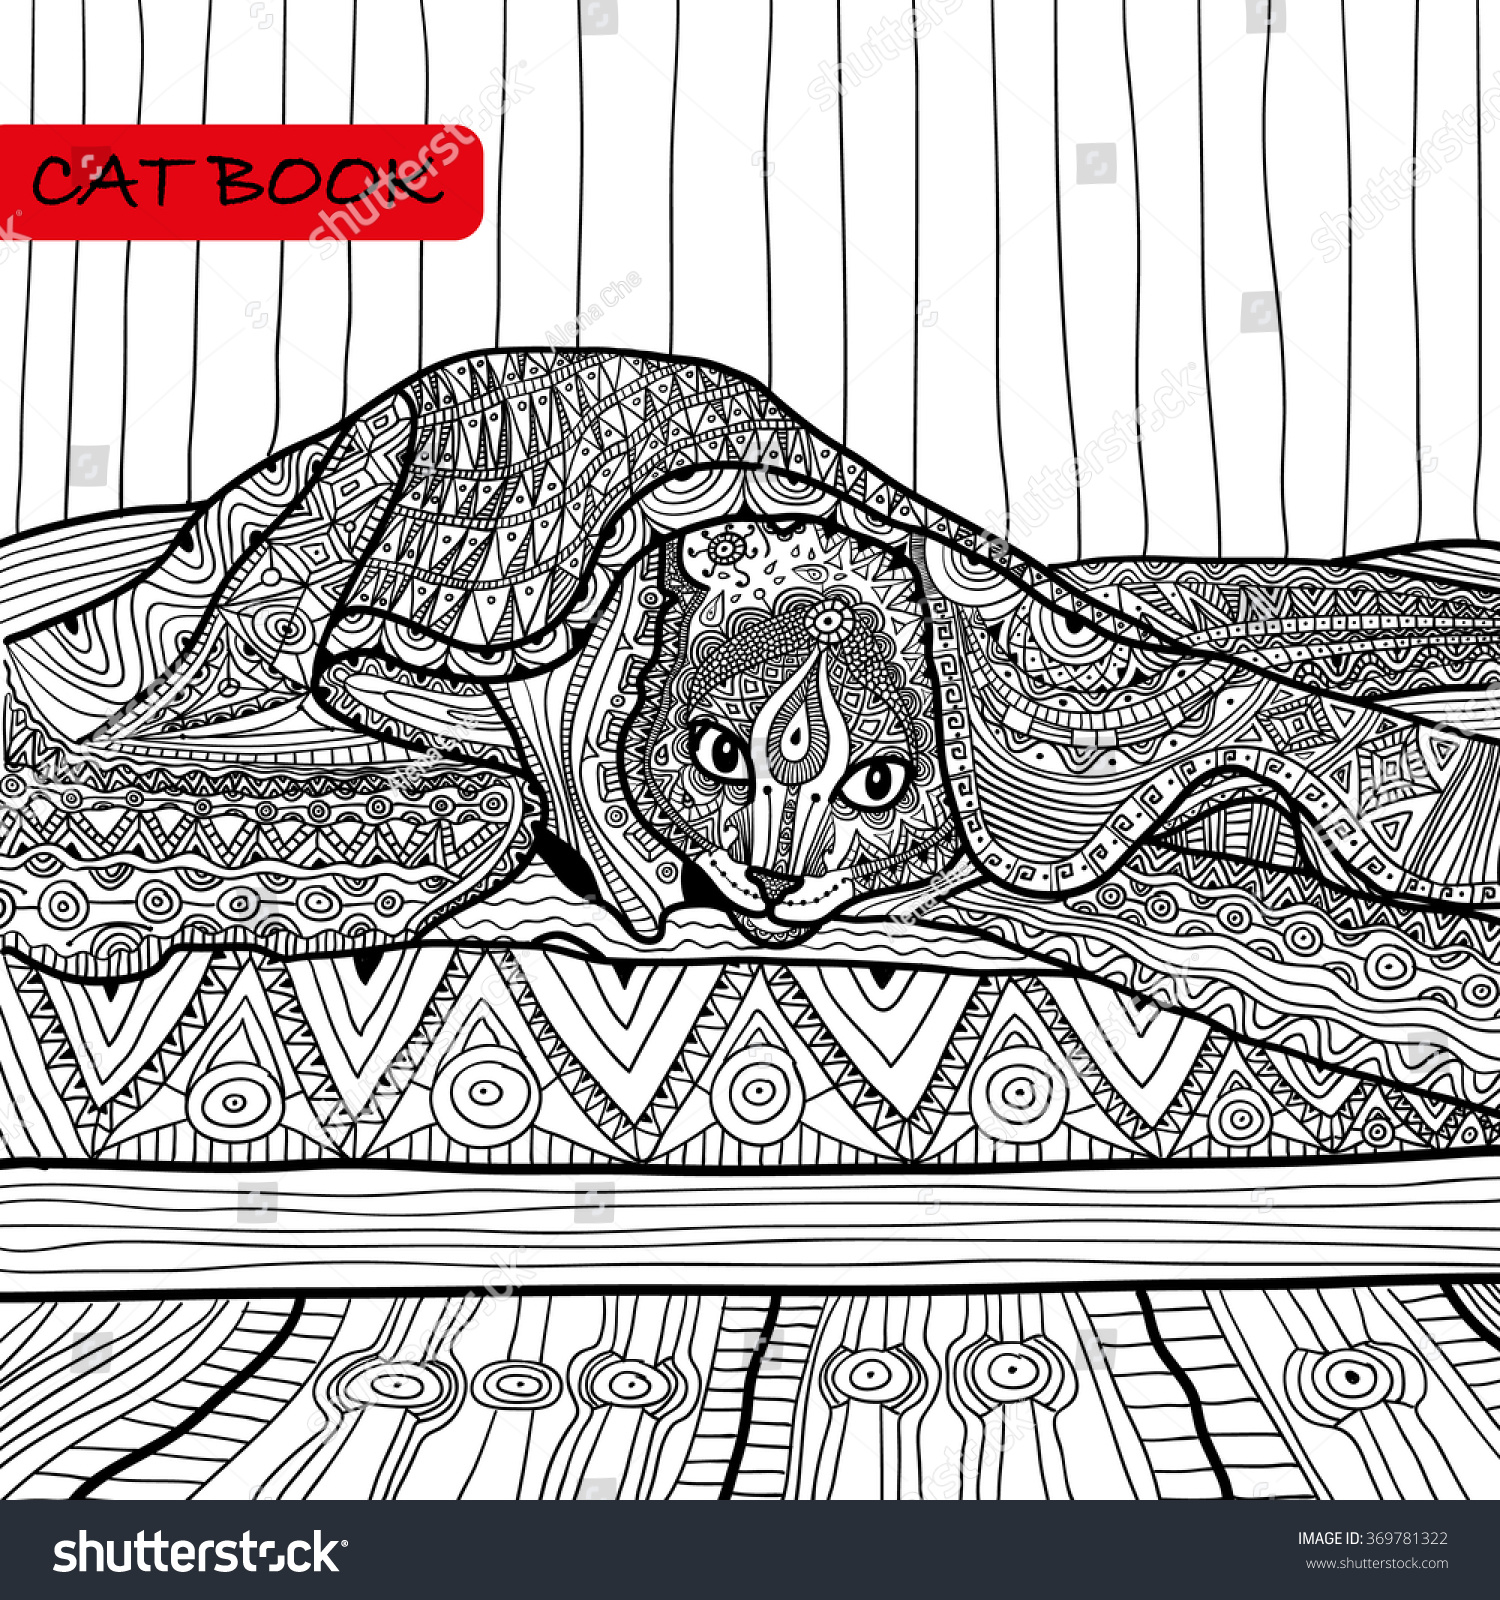 Zen cat coloring page - Coloring Book For Adults Zentangle Cat Book The Cat On The Bed Coloring